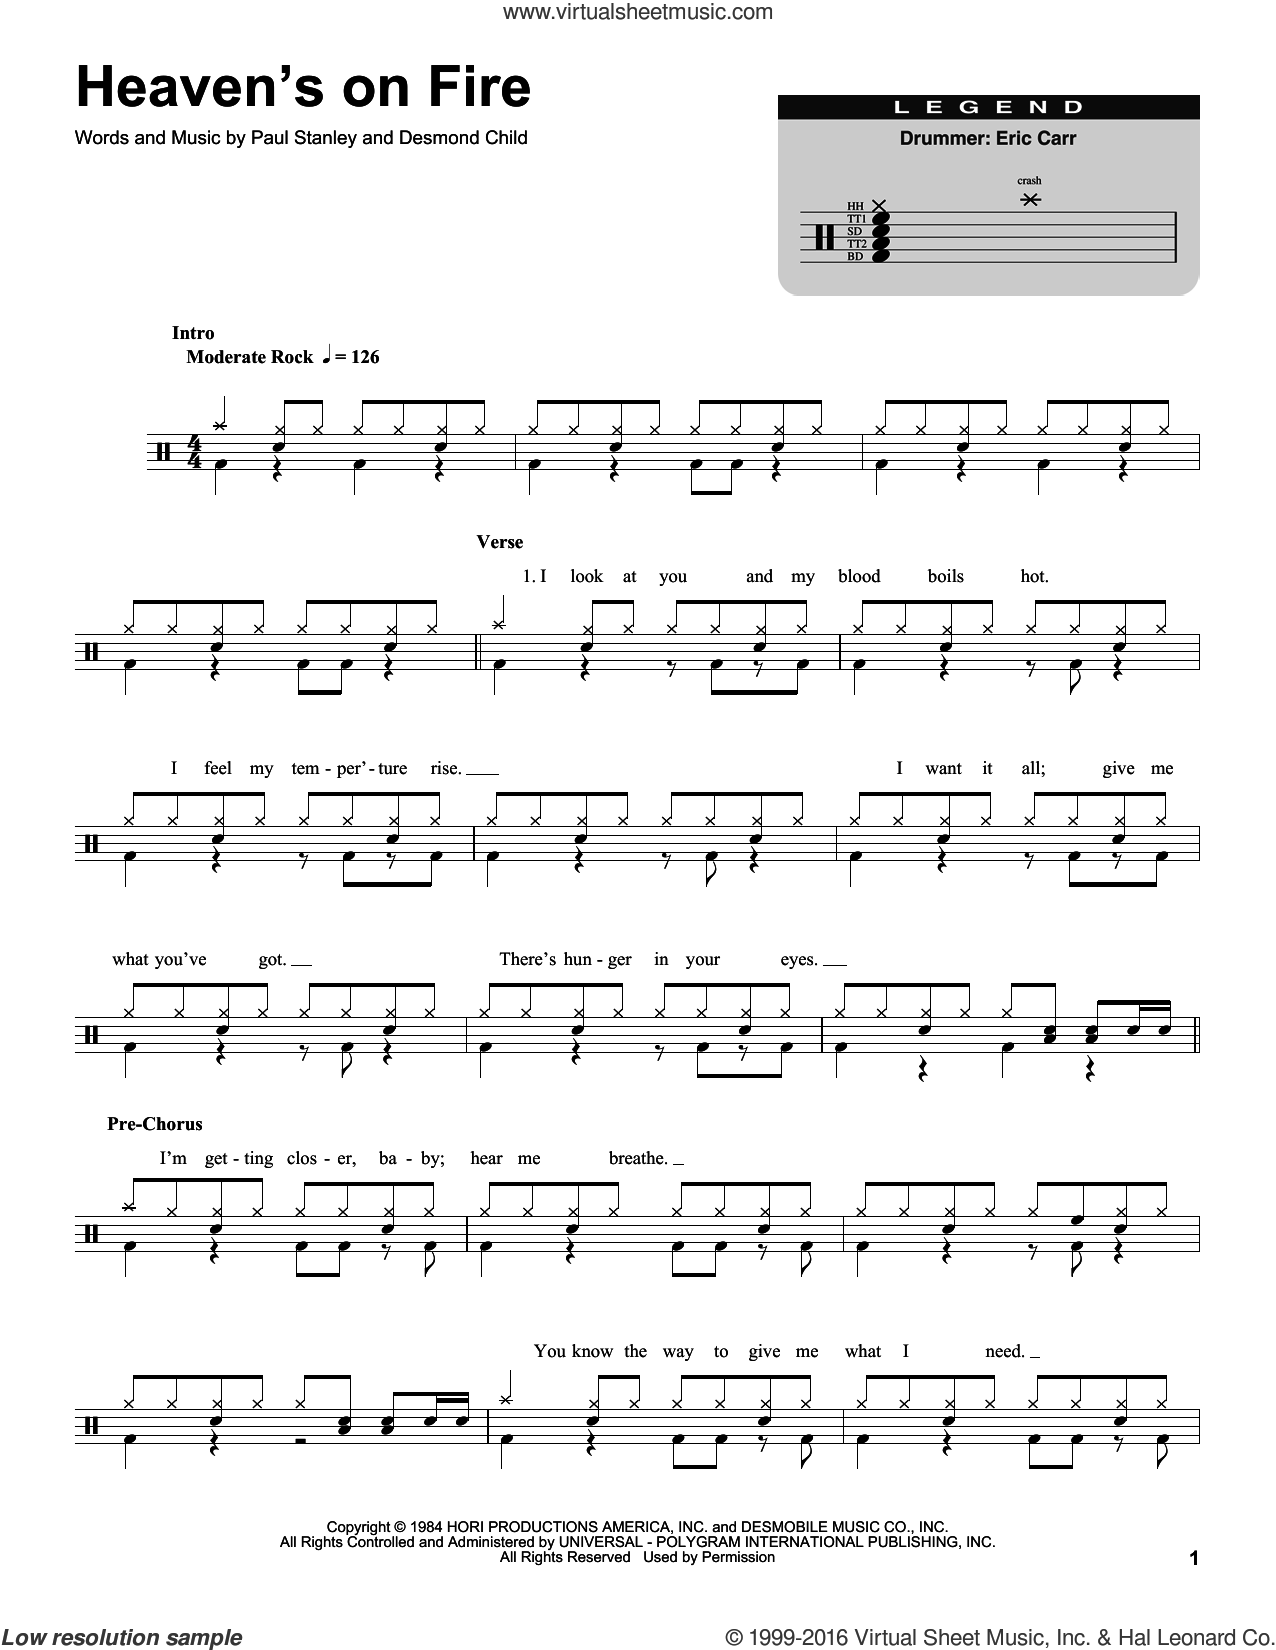 Heaven's On Fire sheet music for drums by KISS, Desmond Child and Paul Stanley, intermediate skill level